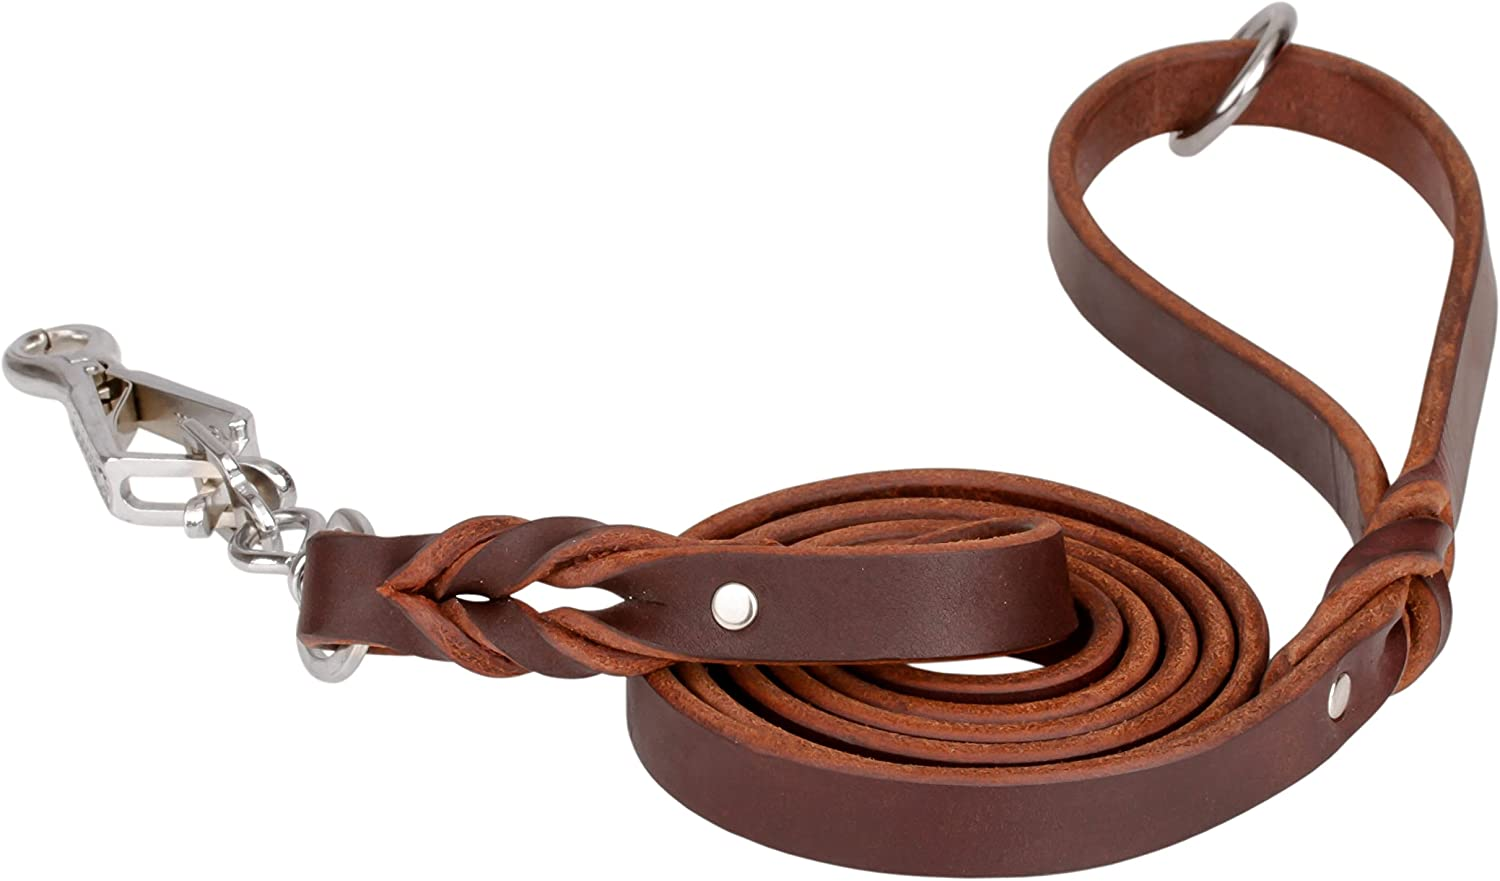 Herm Sprenger Handcrafted Leather Labrador Leash with Quick Release Snap Hook 6 ft (180 cm) for Walking and Training